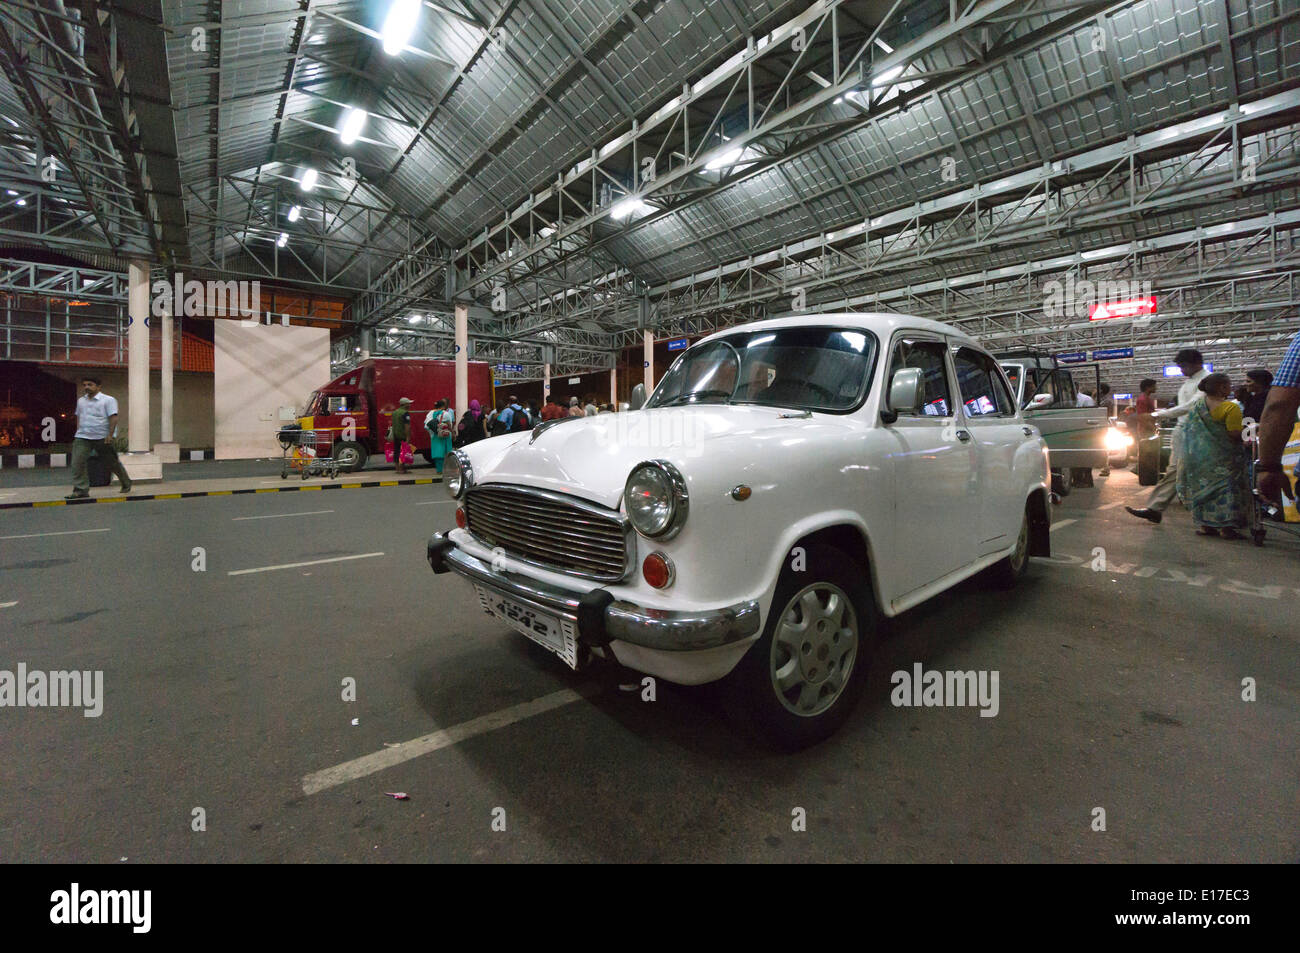 TATA Ambassador car India - manufacture ceased in May 2014. Kochi airport taxi. Stock Photo